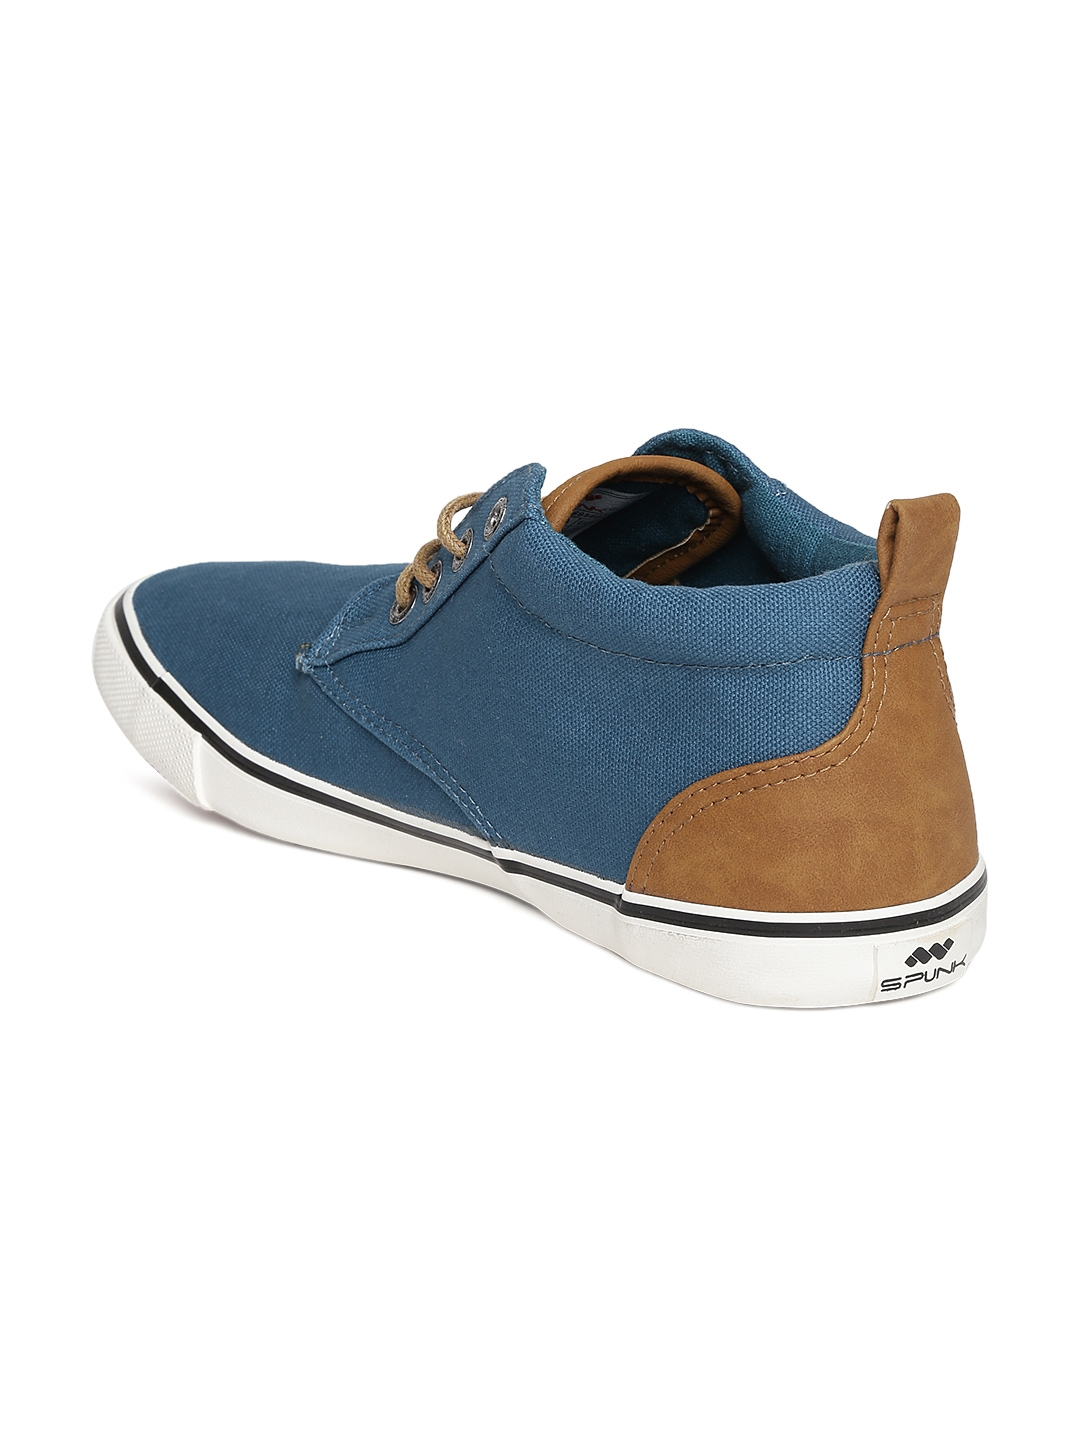 myntra teal blue canvas shoes 745463 buy